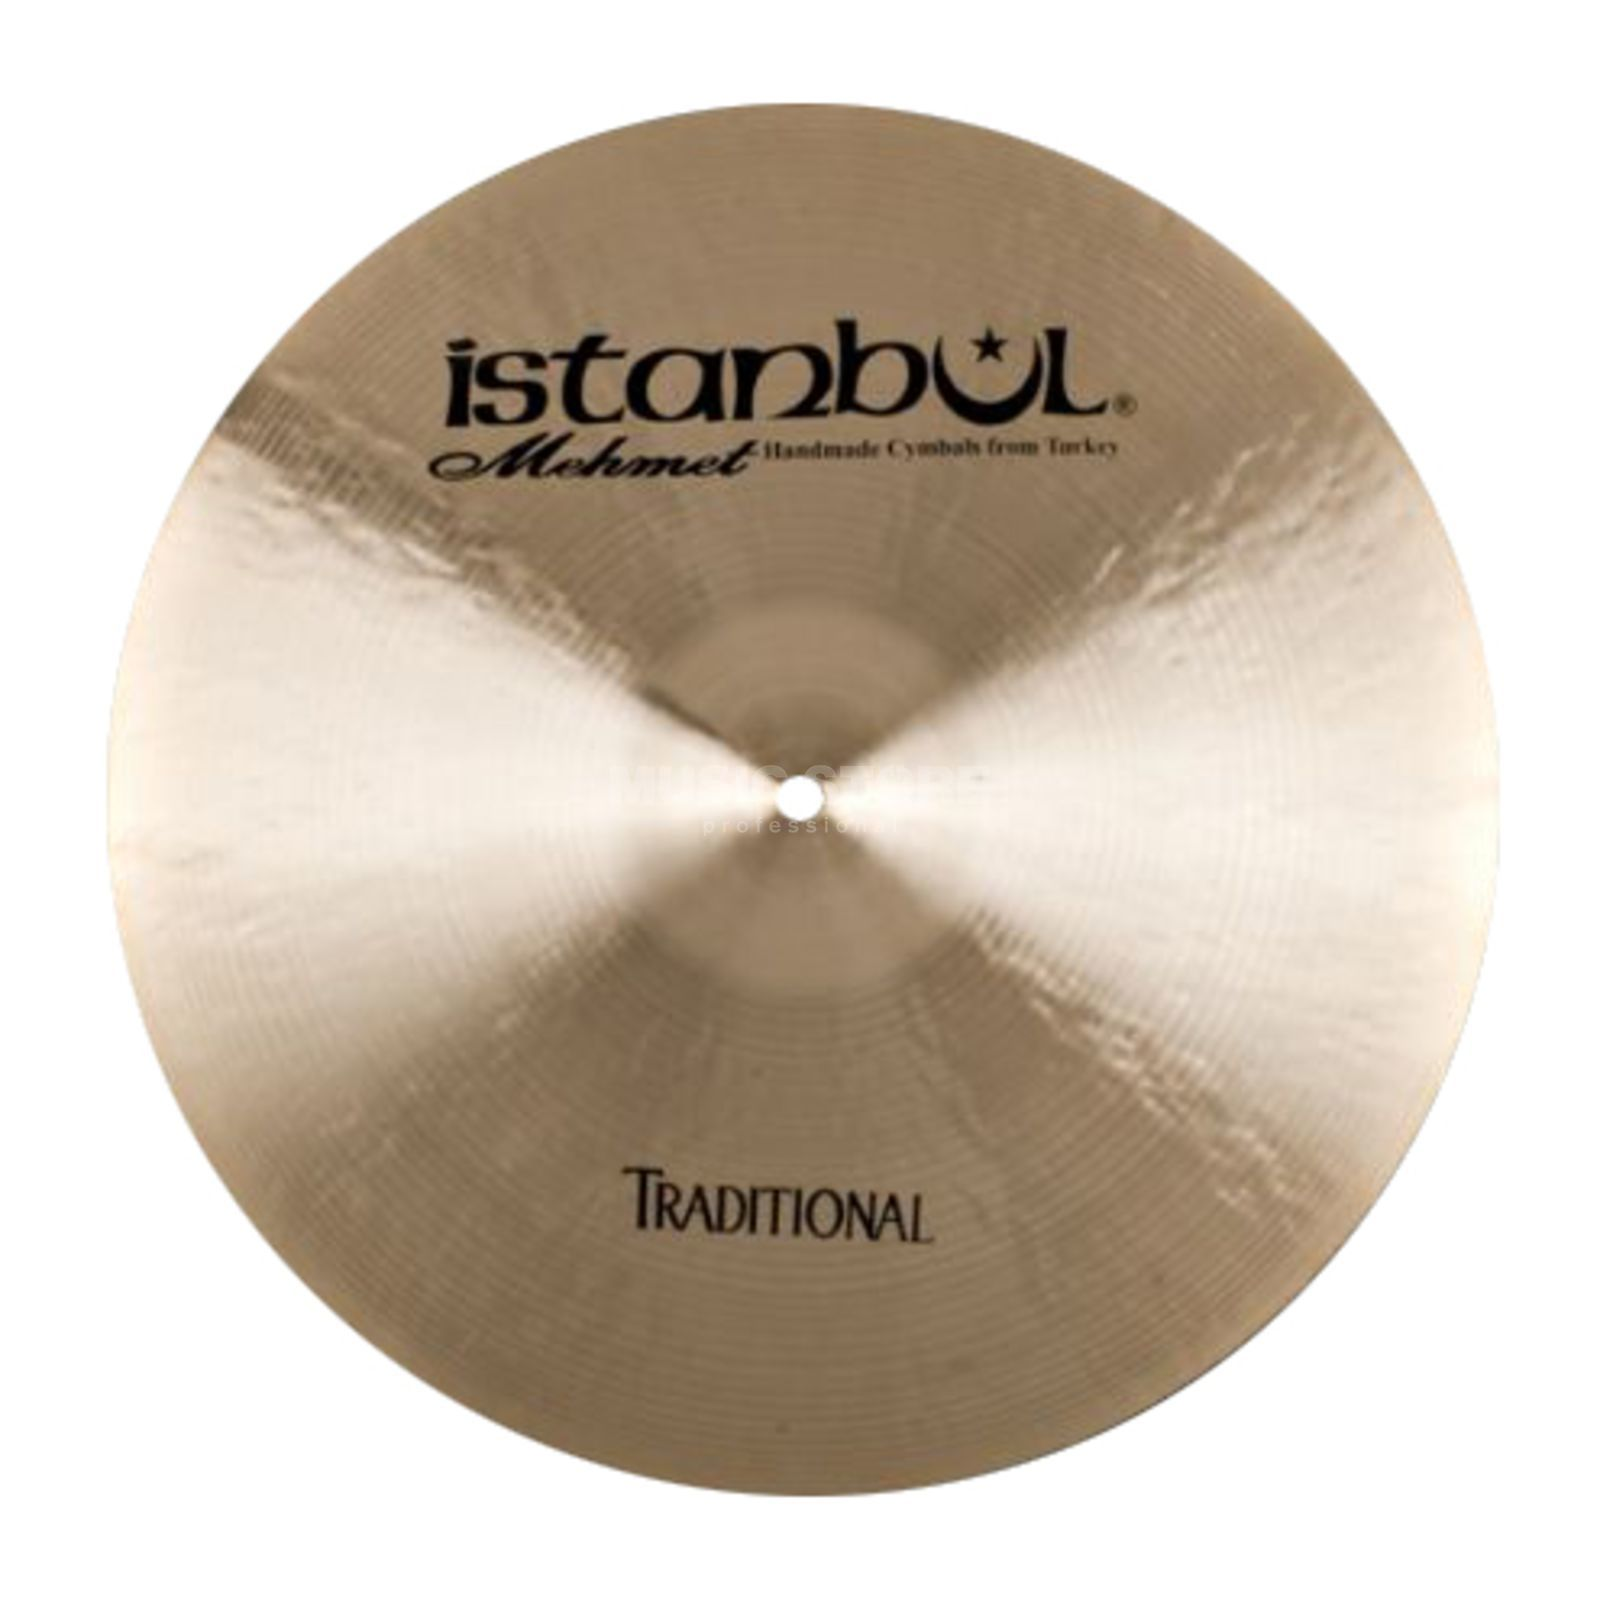 "Istanbul Traditional Heavy Crash 14"", CVY14 Image du produit"